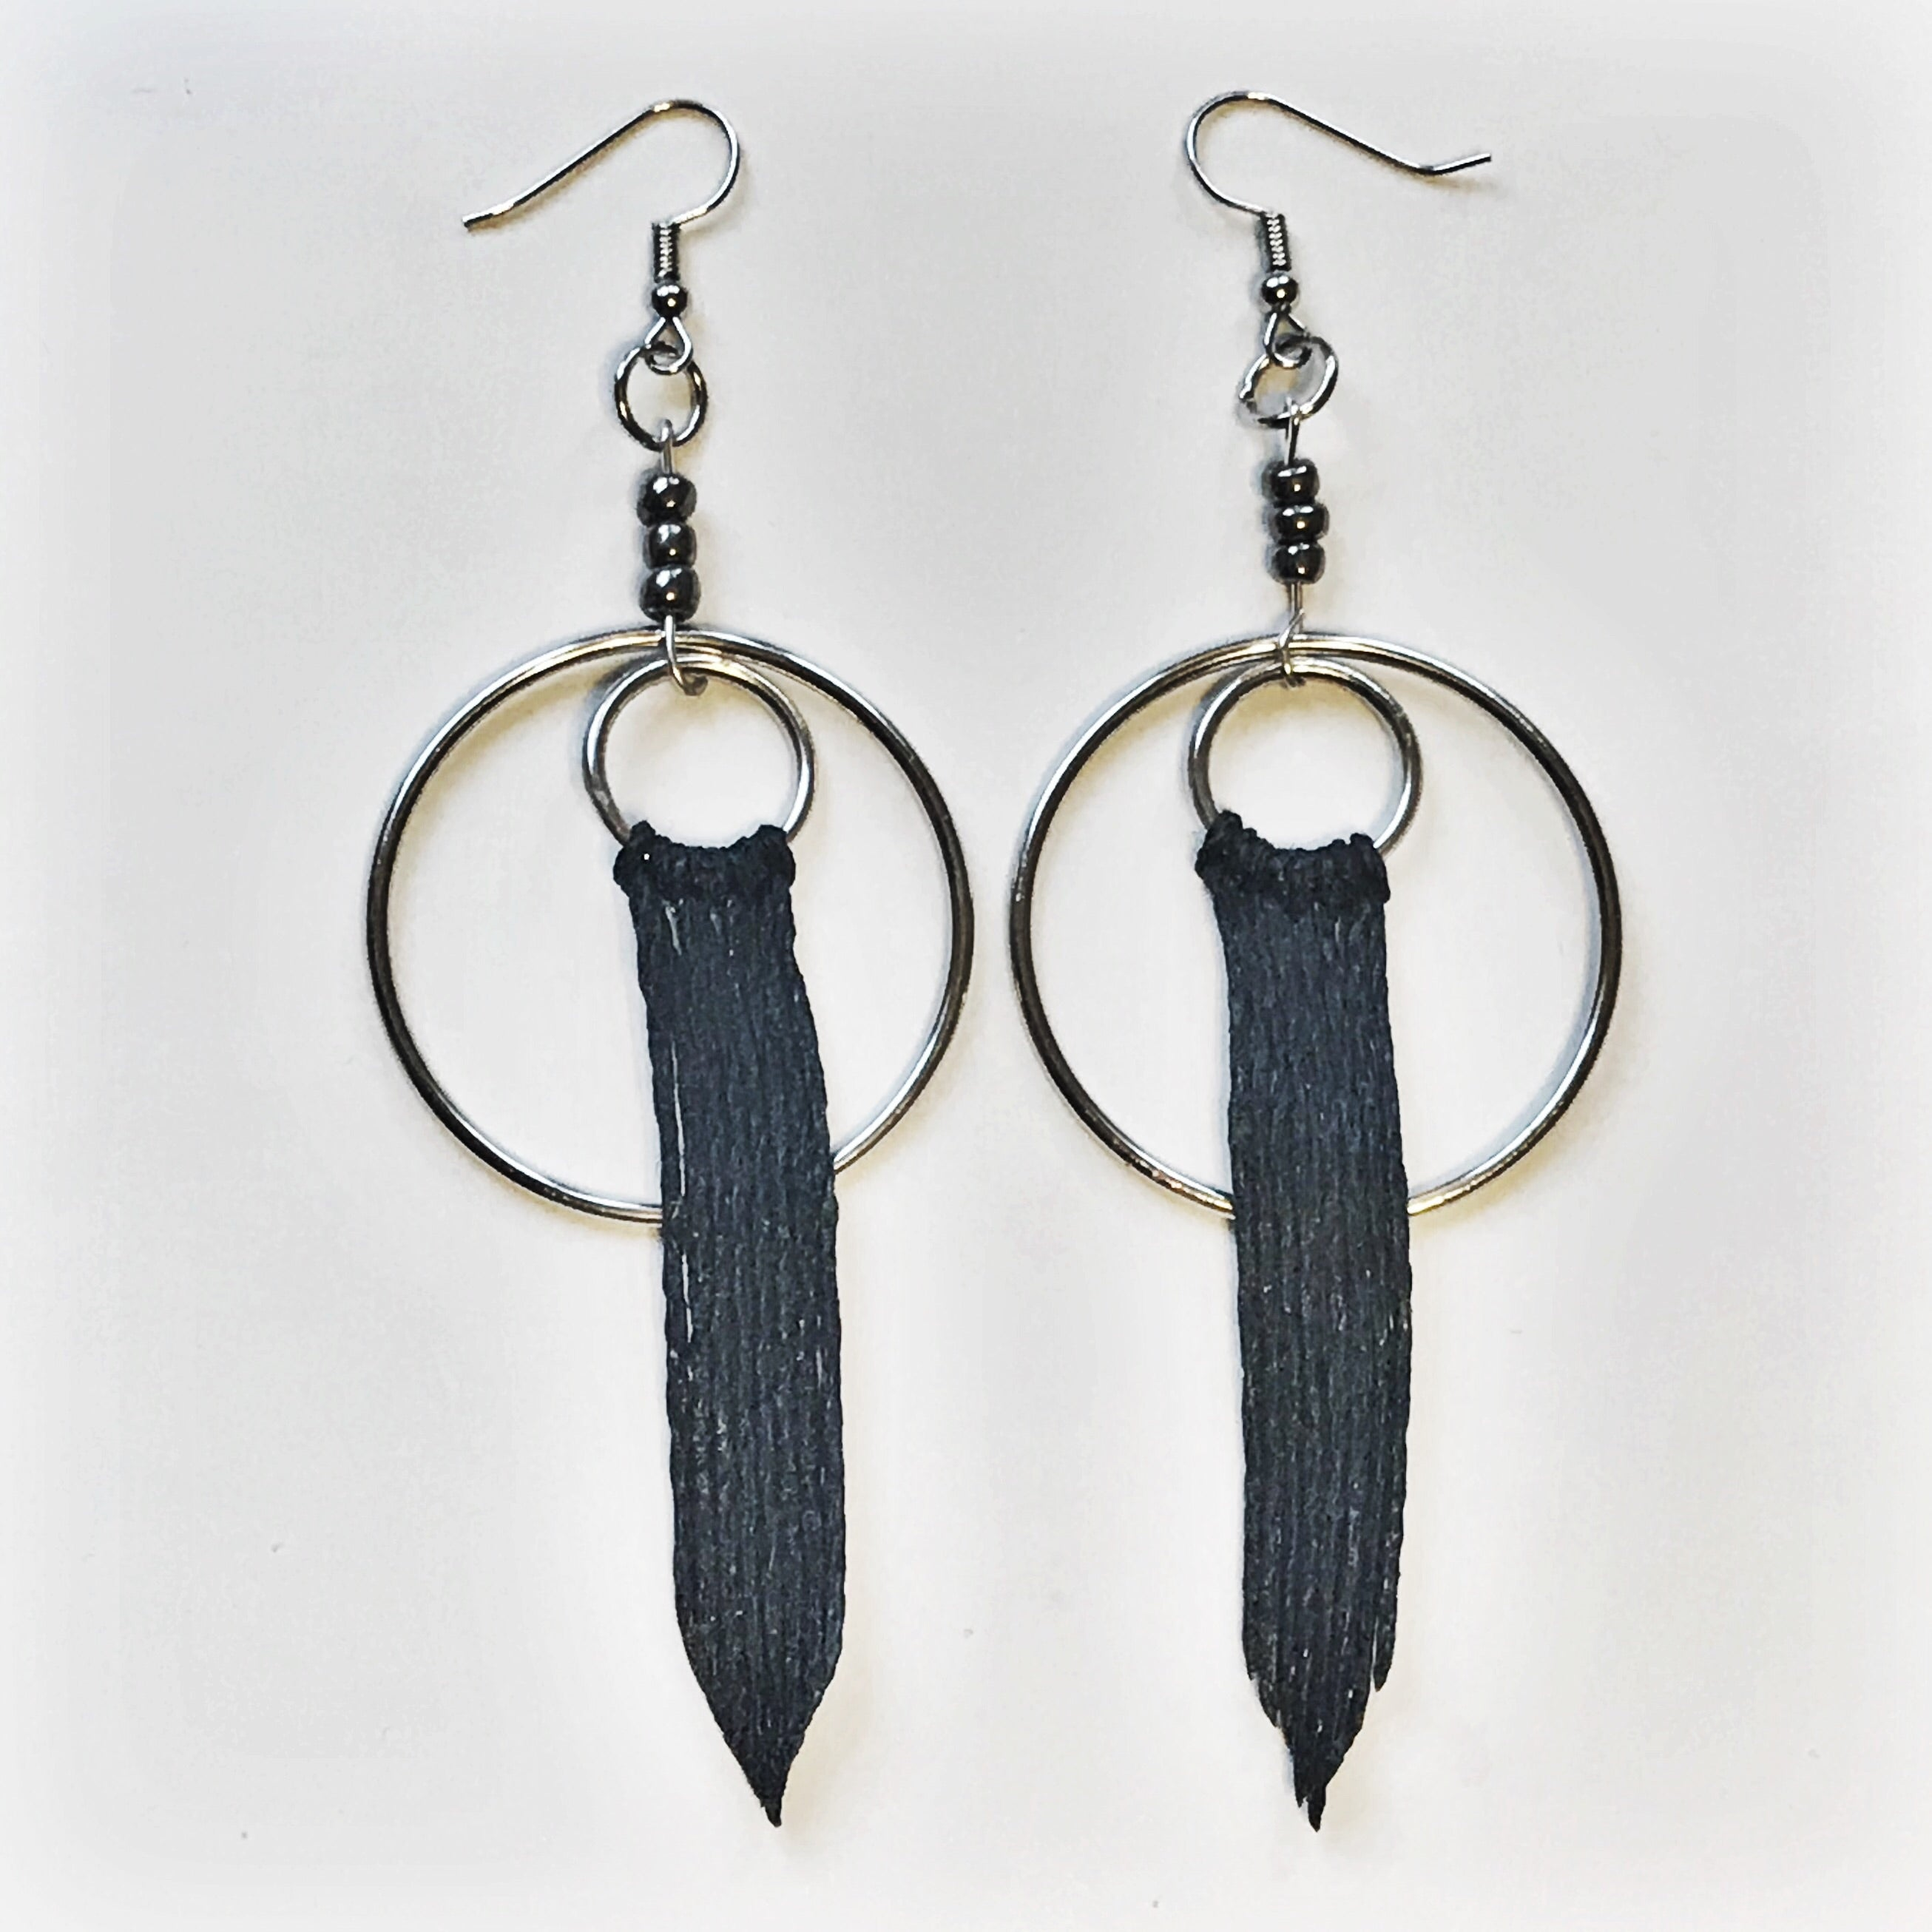 The Black Minimalist Tassel Earrings